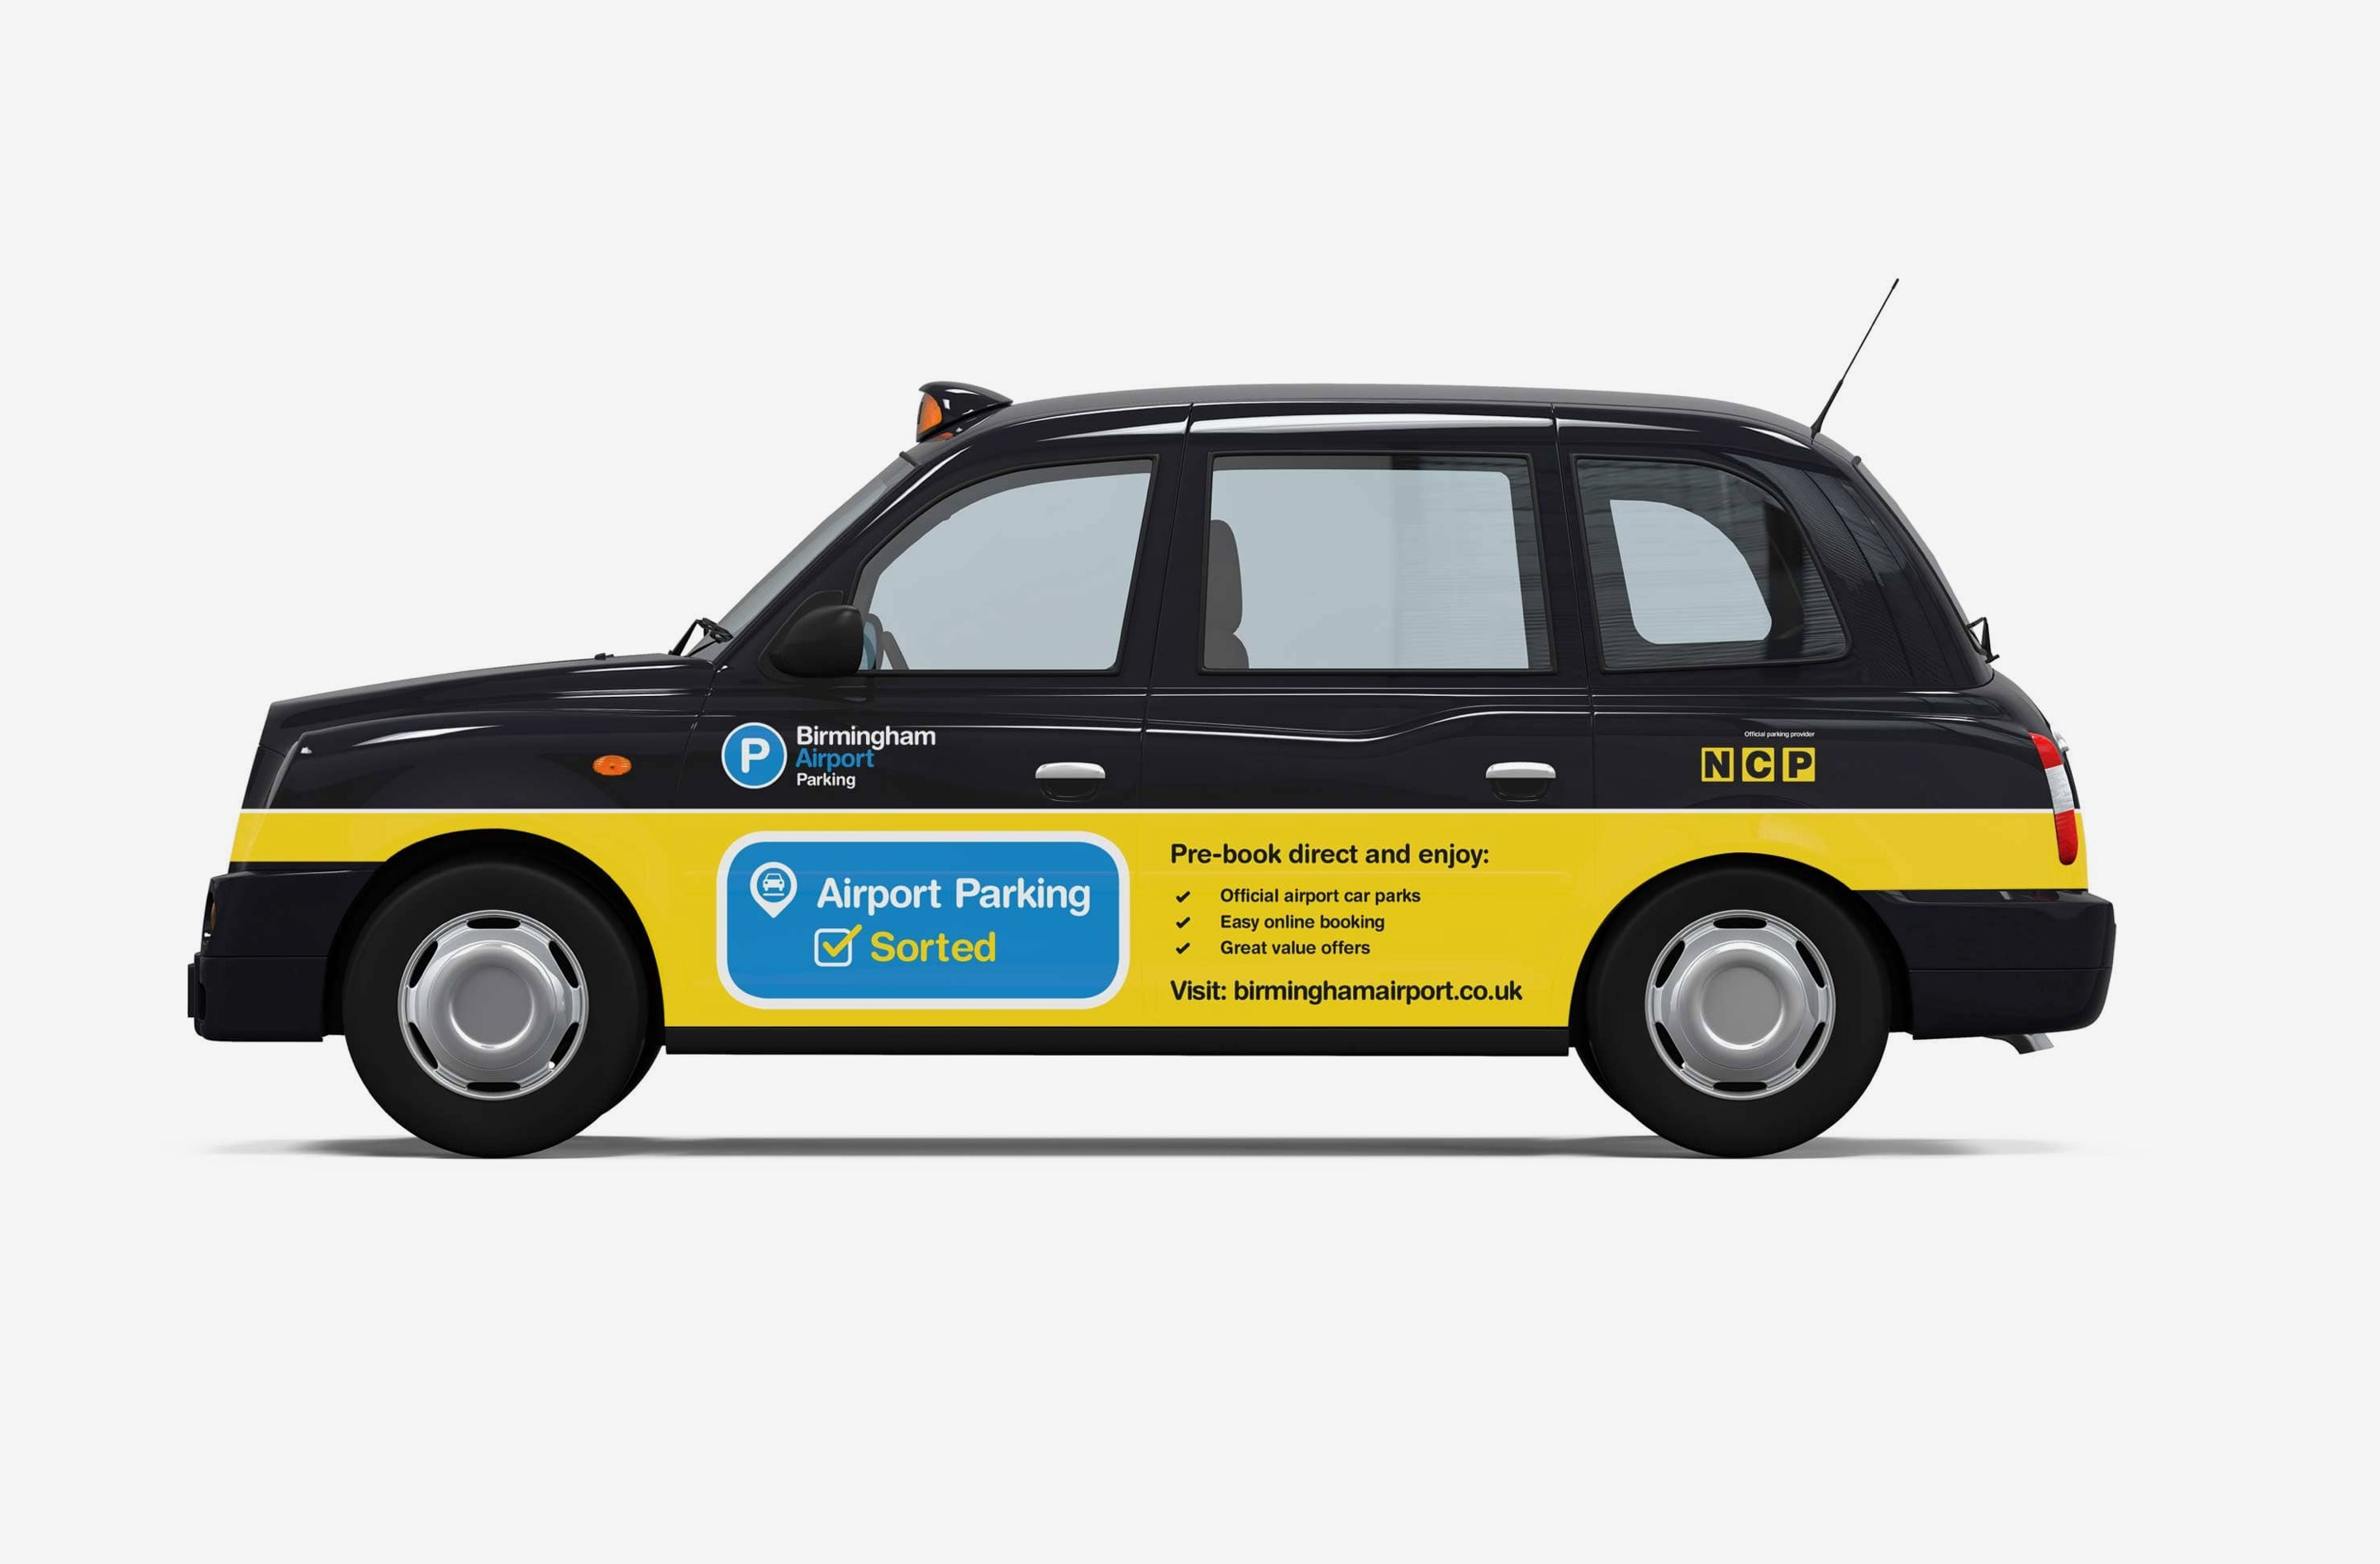 Our campaign design extended to taxi wraps